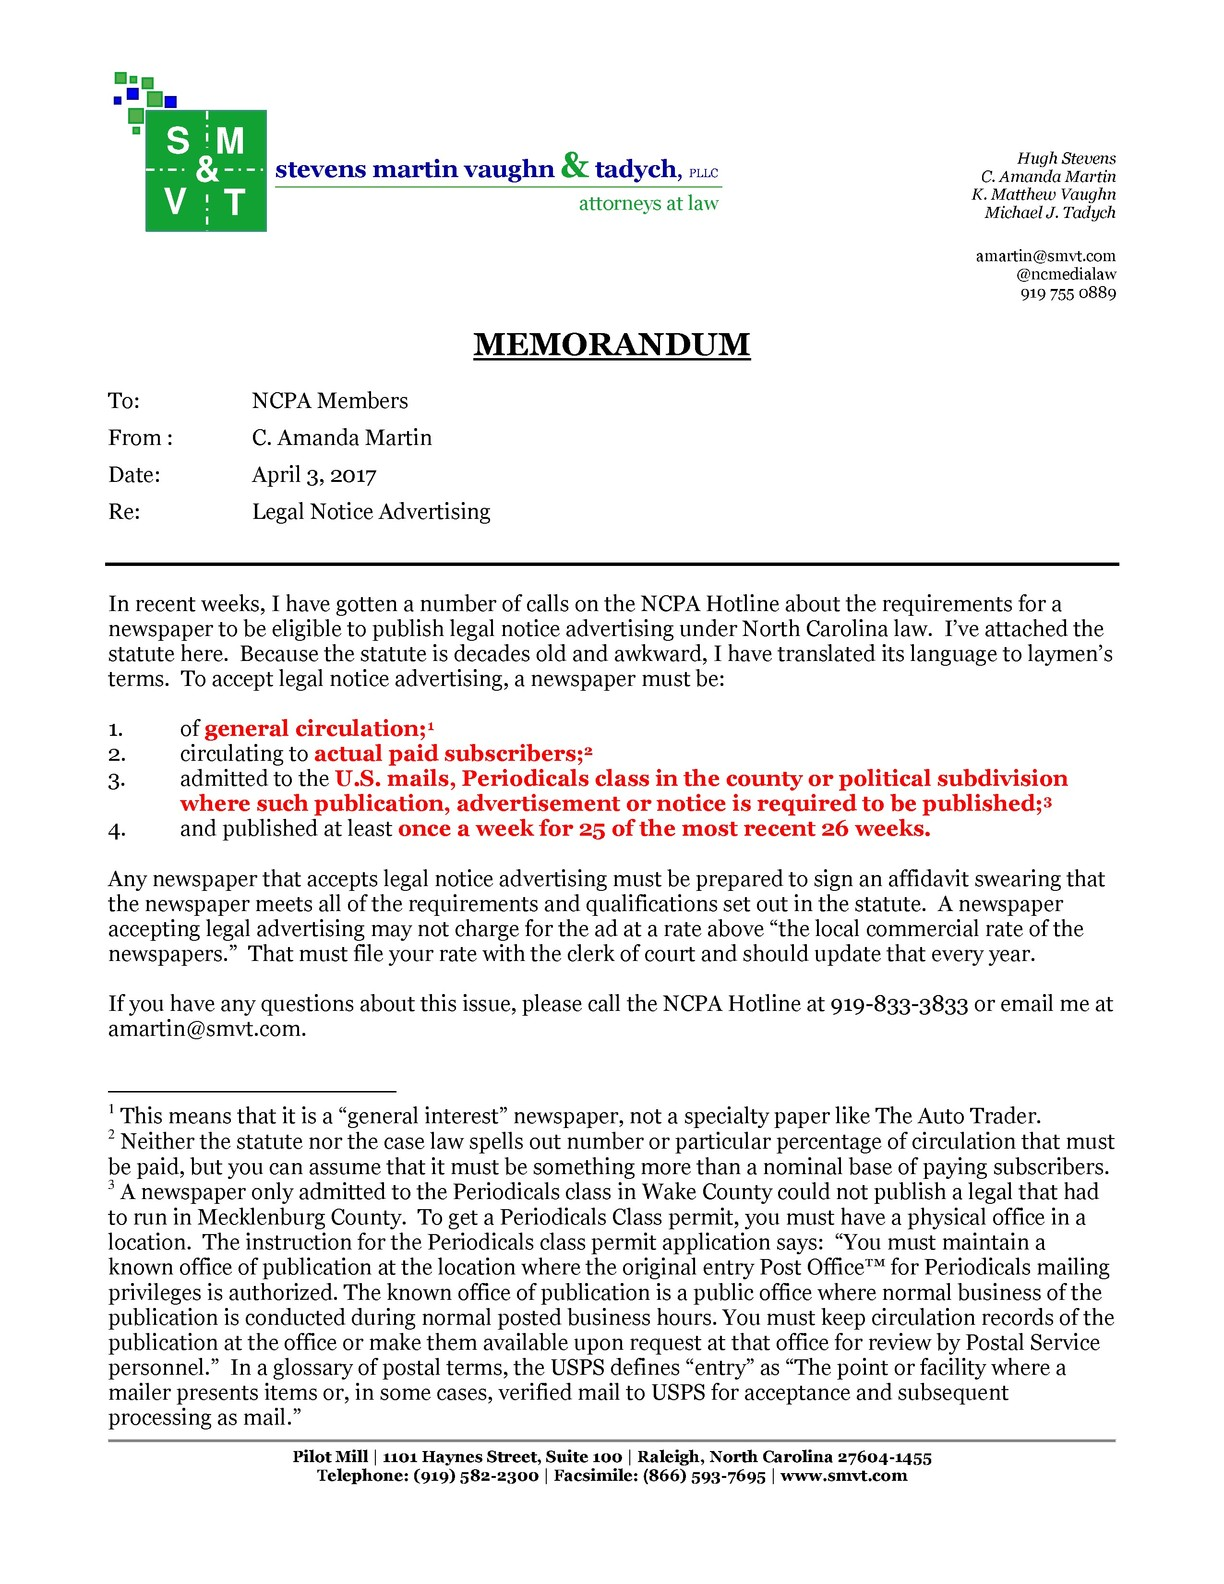 Memo re. public notices